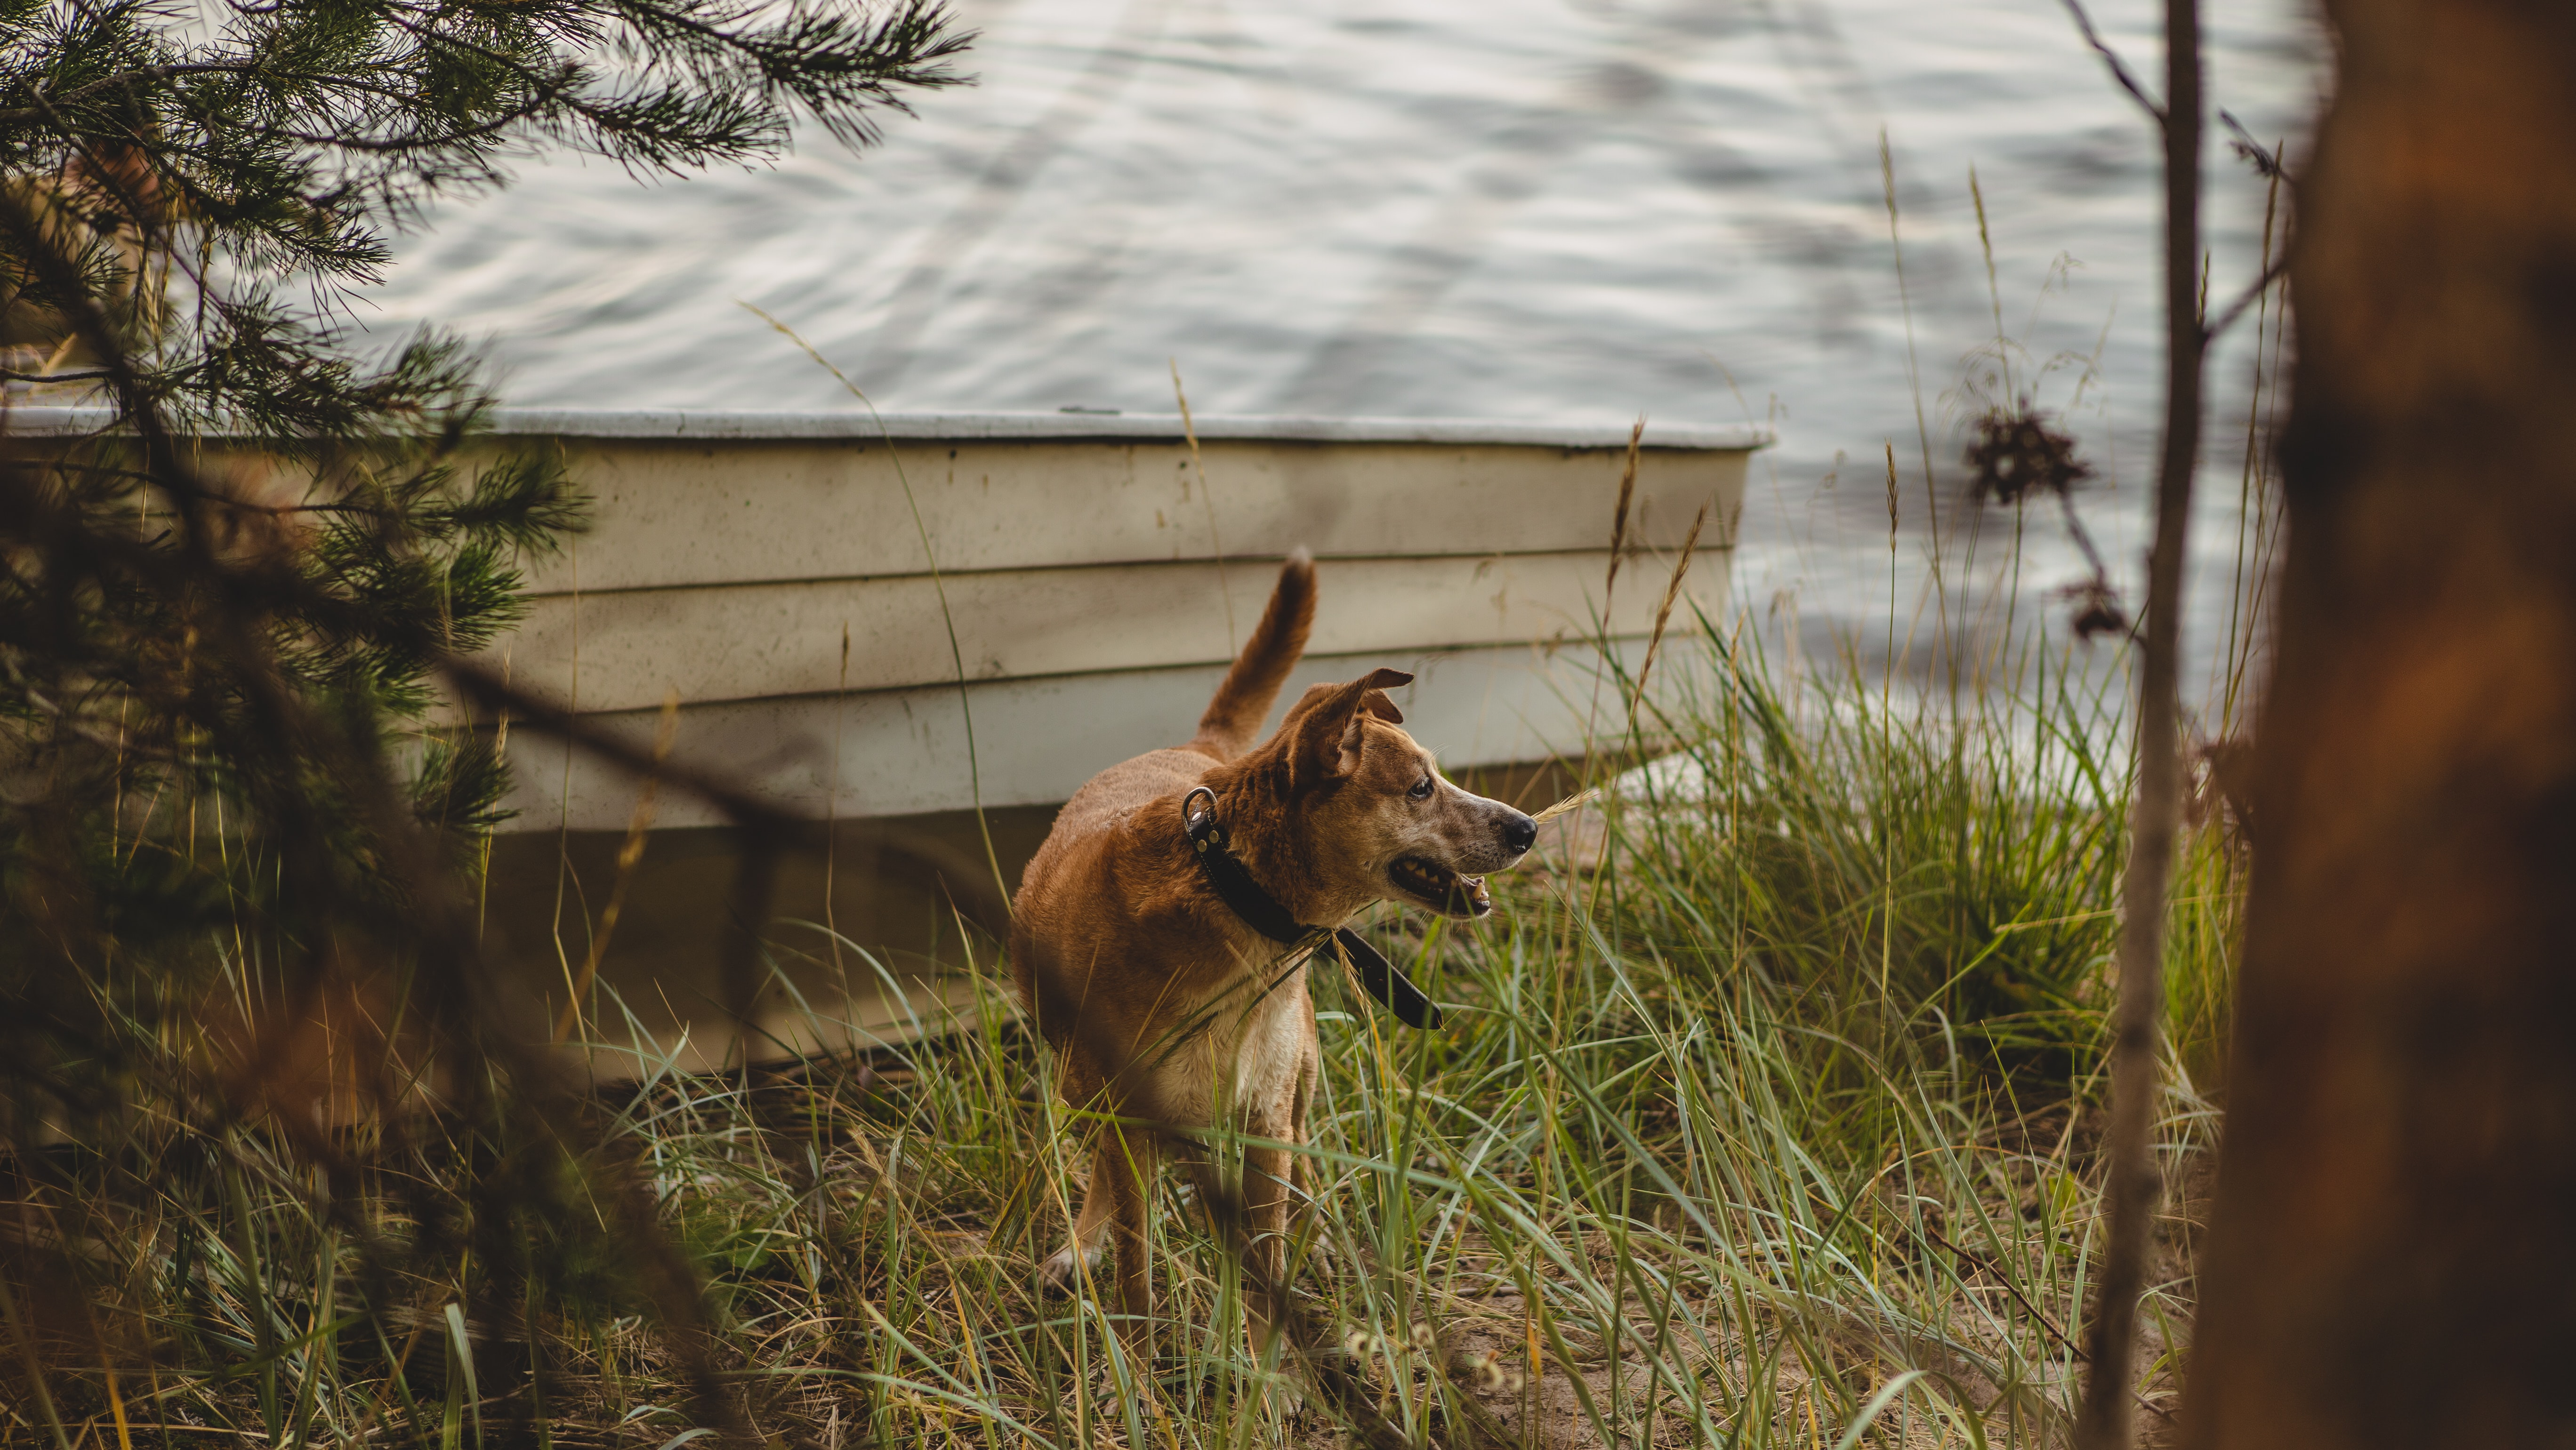 brown dog with black collar standing near gray boat beside lake during daytime